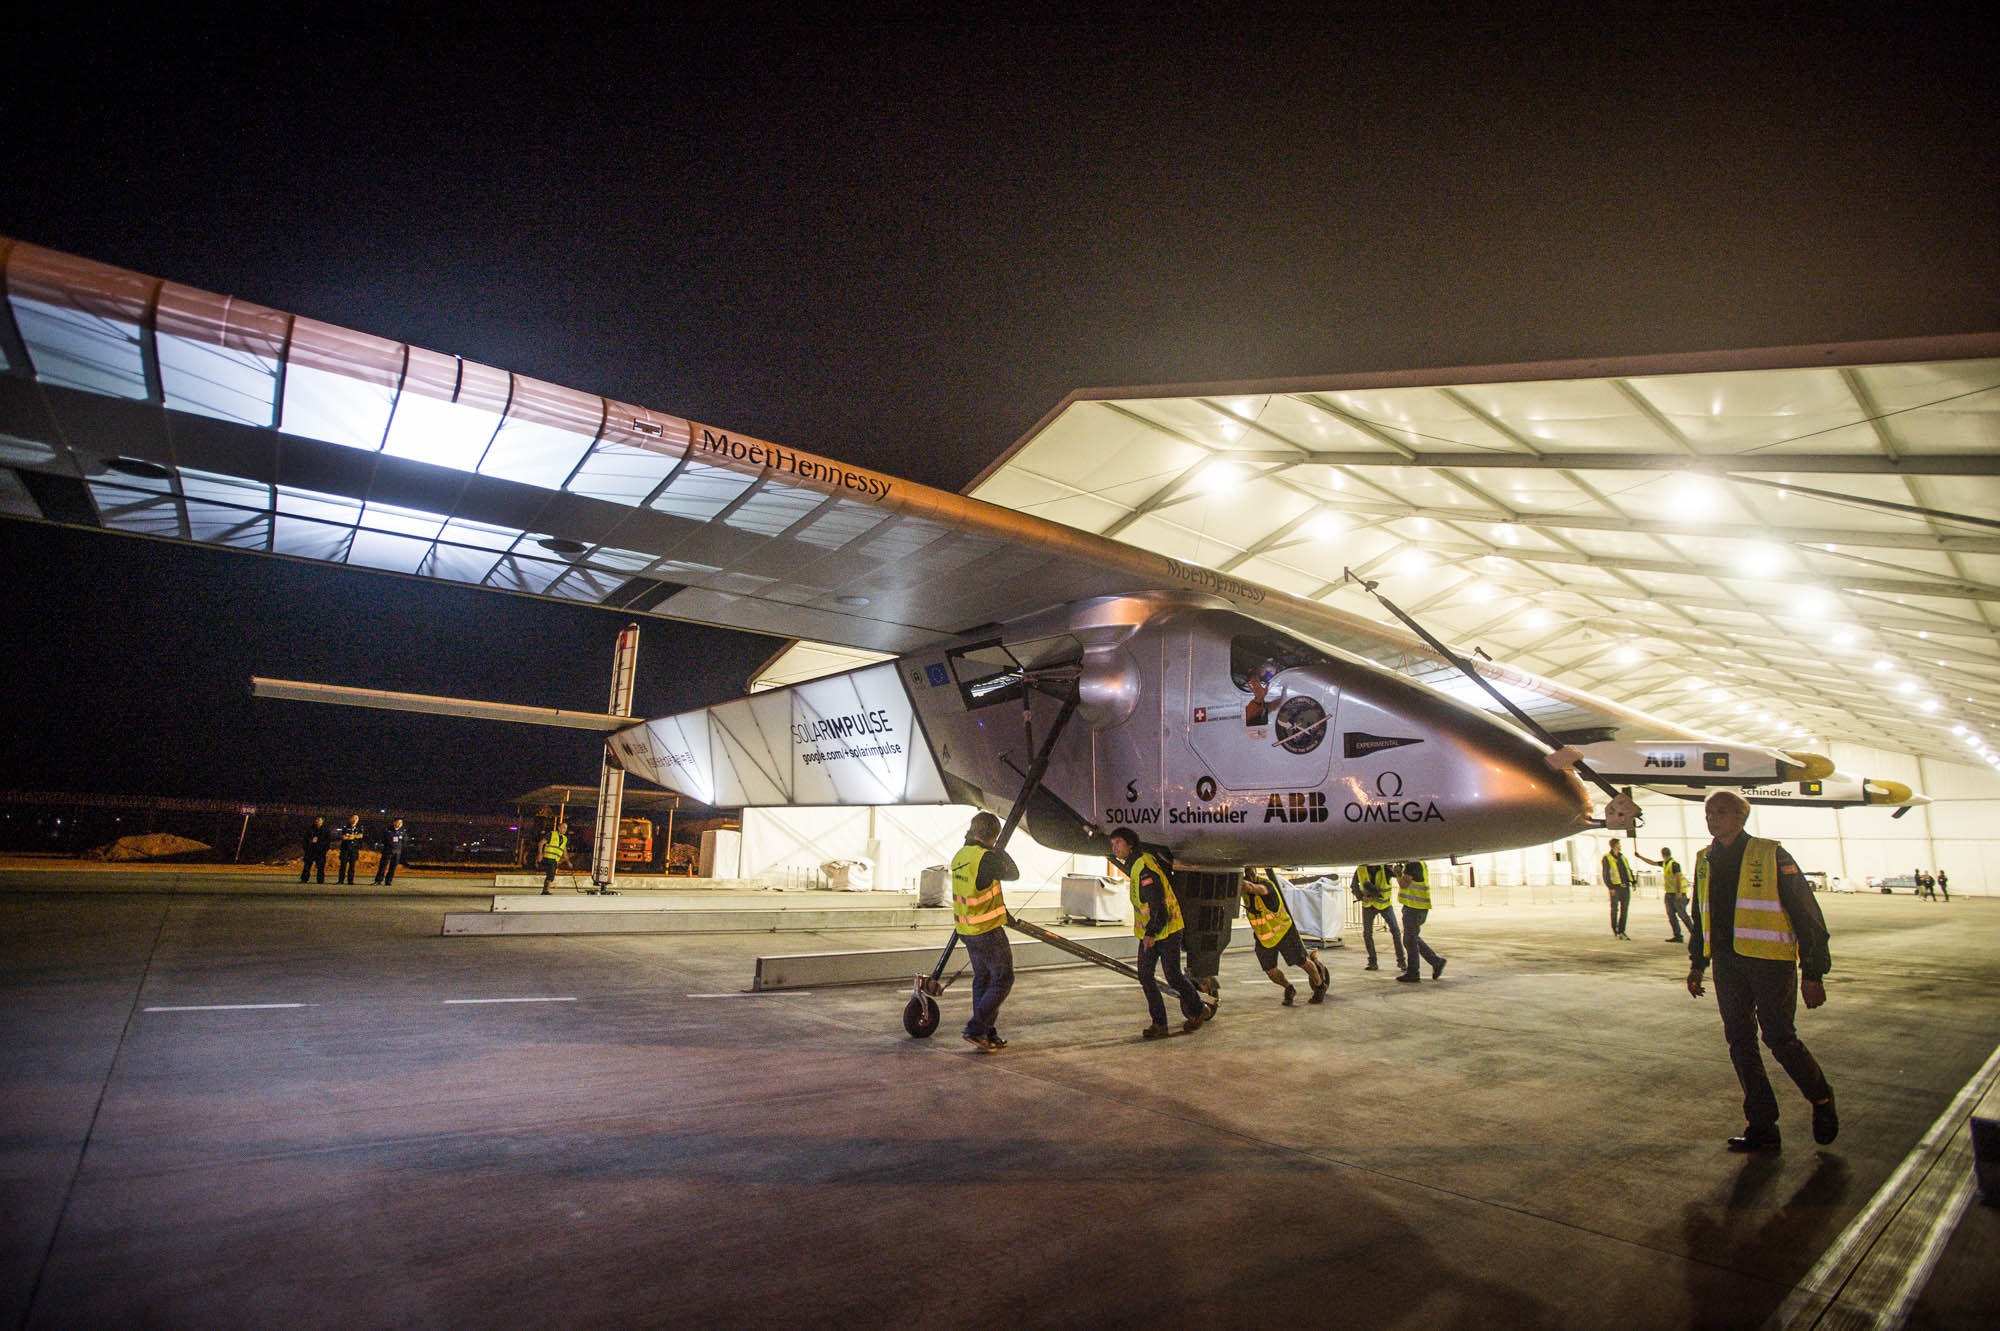 Solar Impulse crosses China: Sixth leg of groundbreaking round-the-world flight is completed